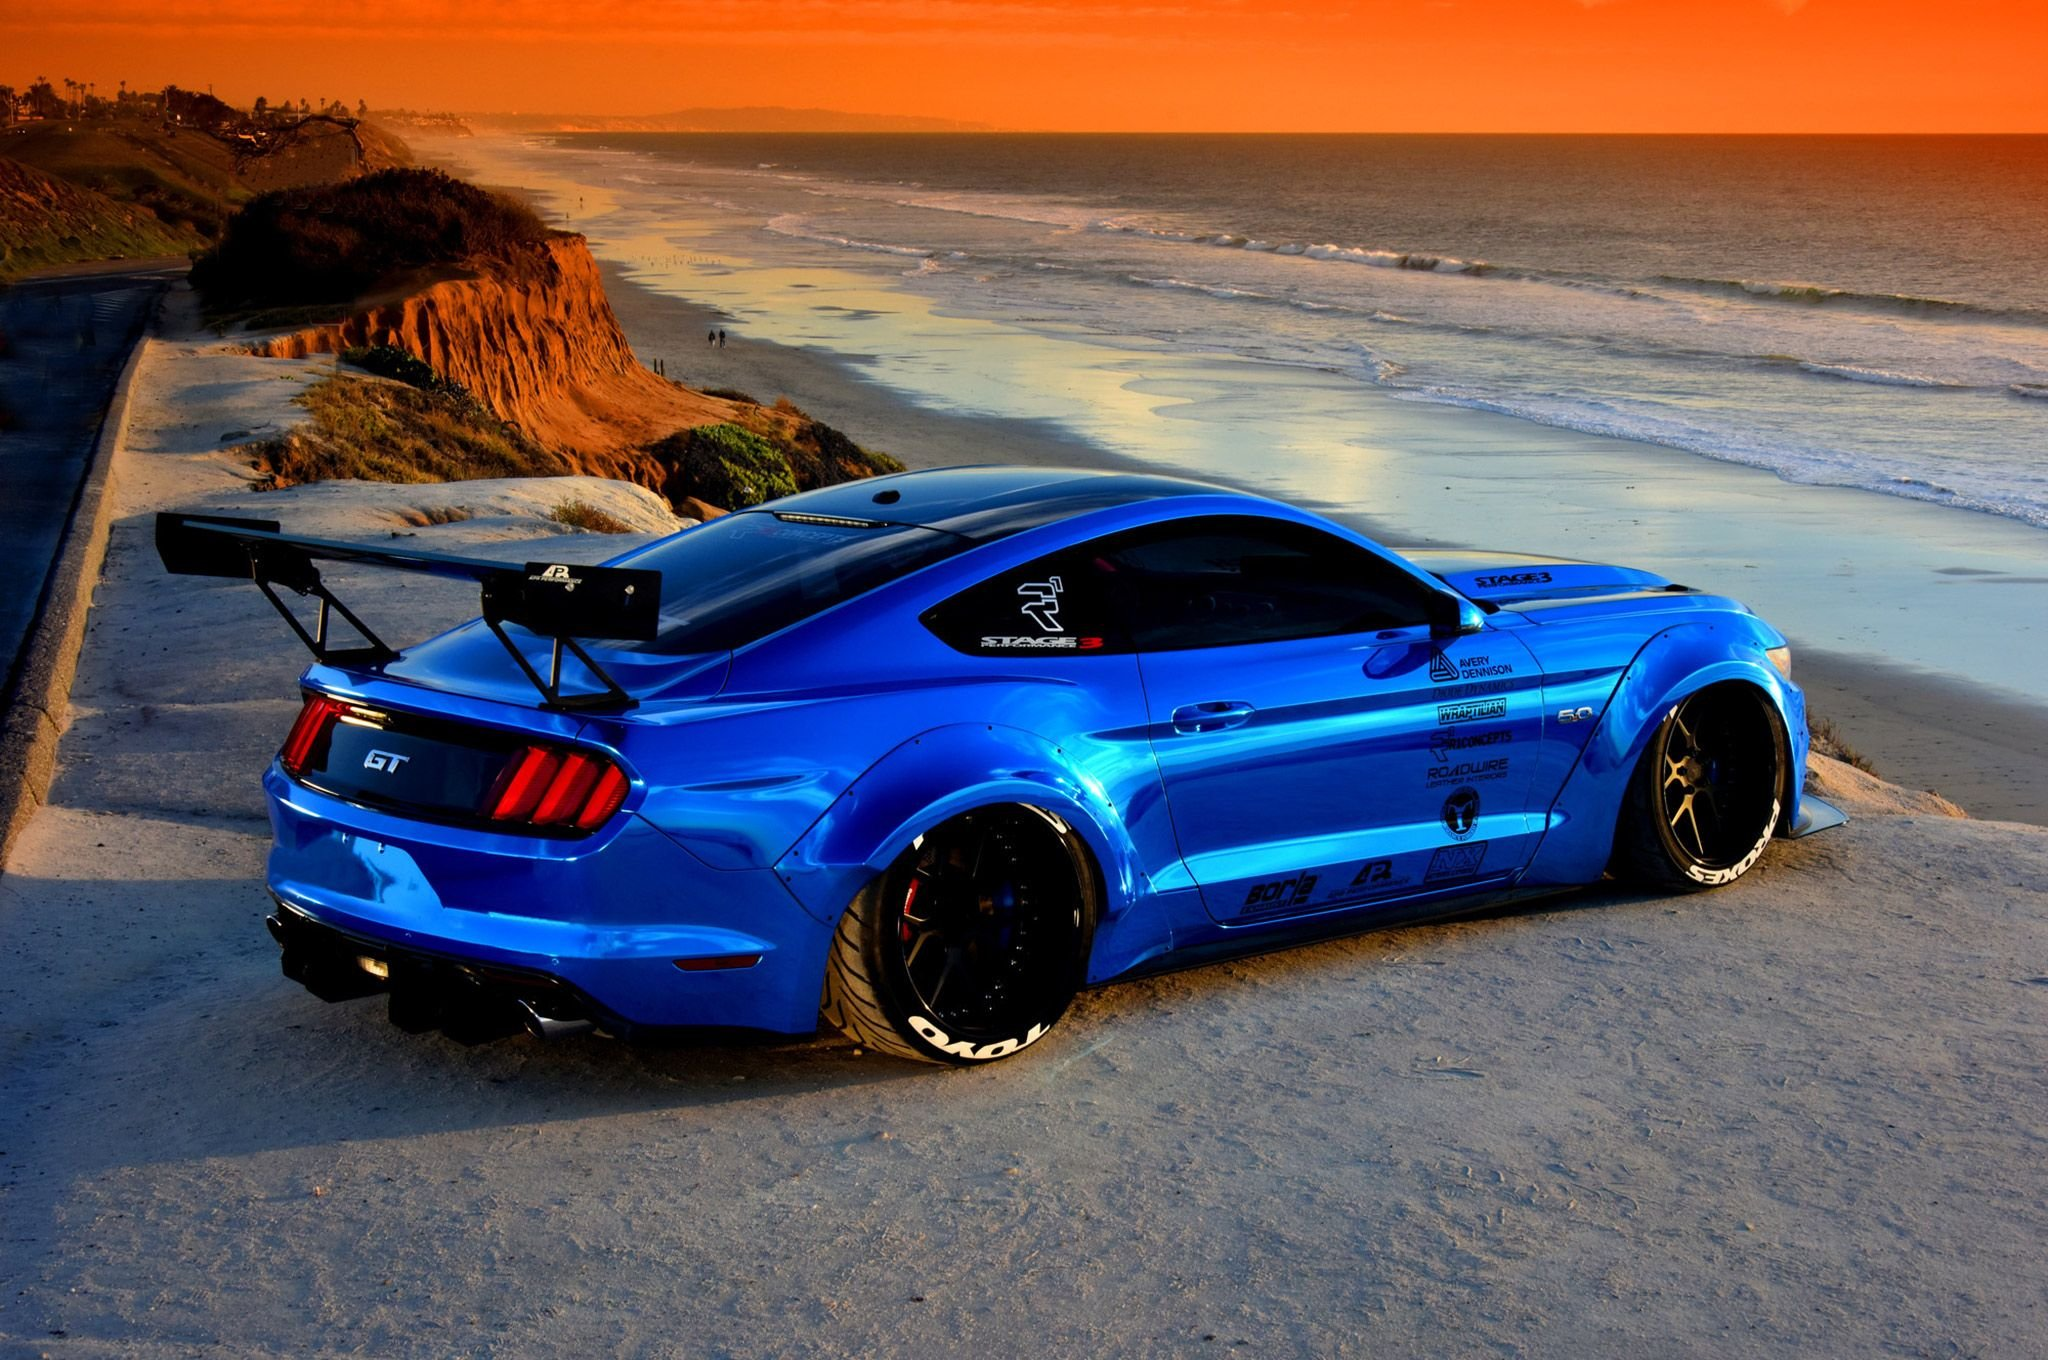 2015 s550 ford mustang drift race racing muscle hot rod rods tuning muscle wallpaper 2048x1360. Black Bedroom Furniture Sets. Home Design Ideas